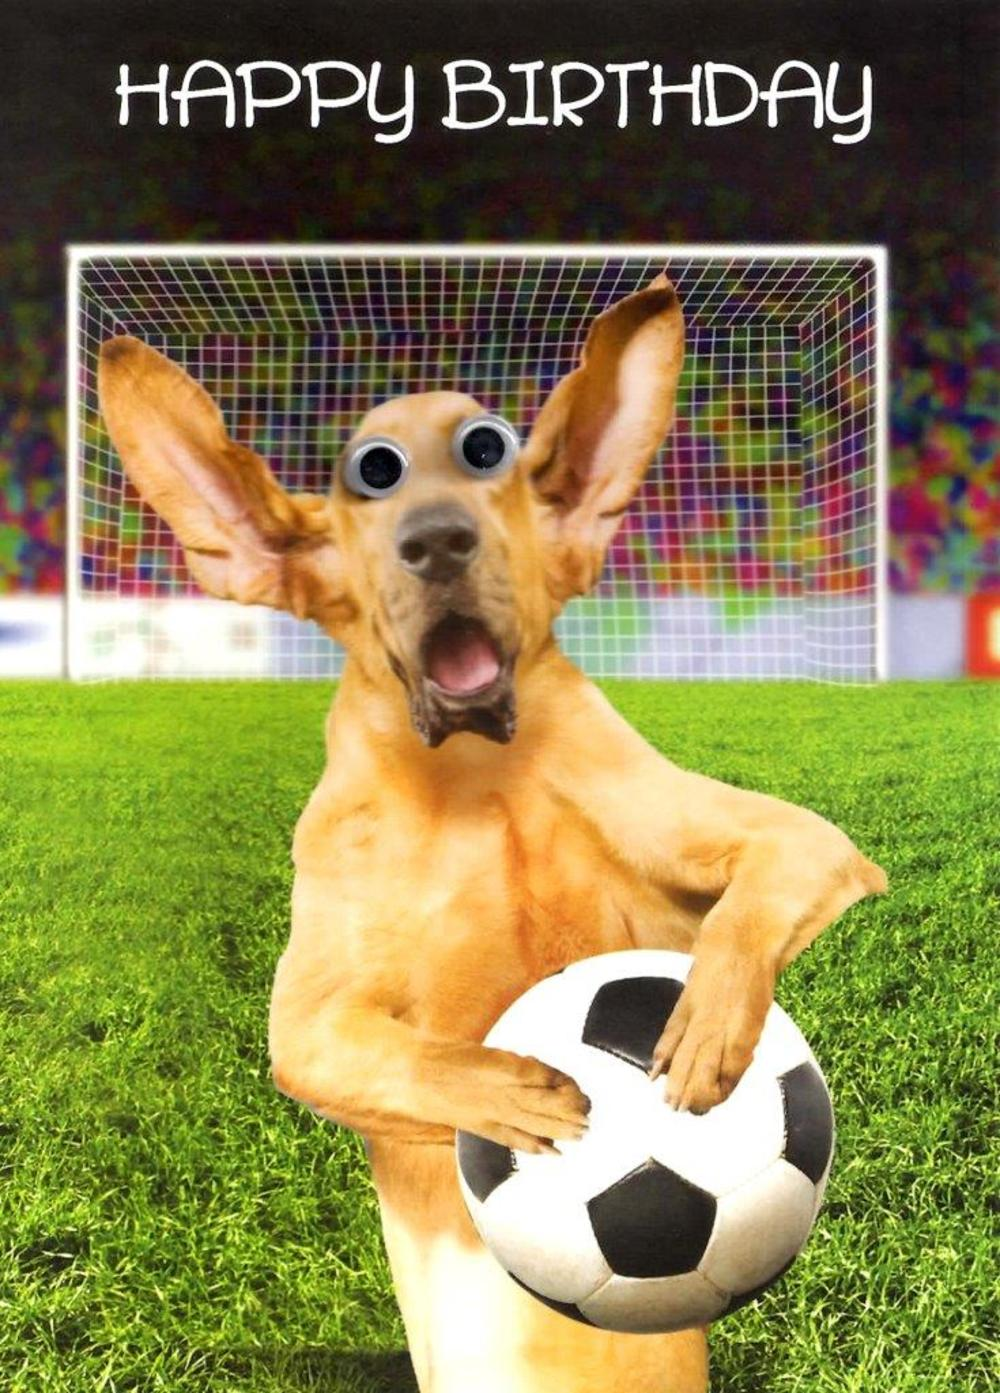 Dog & Football Googlies Birthday Card